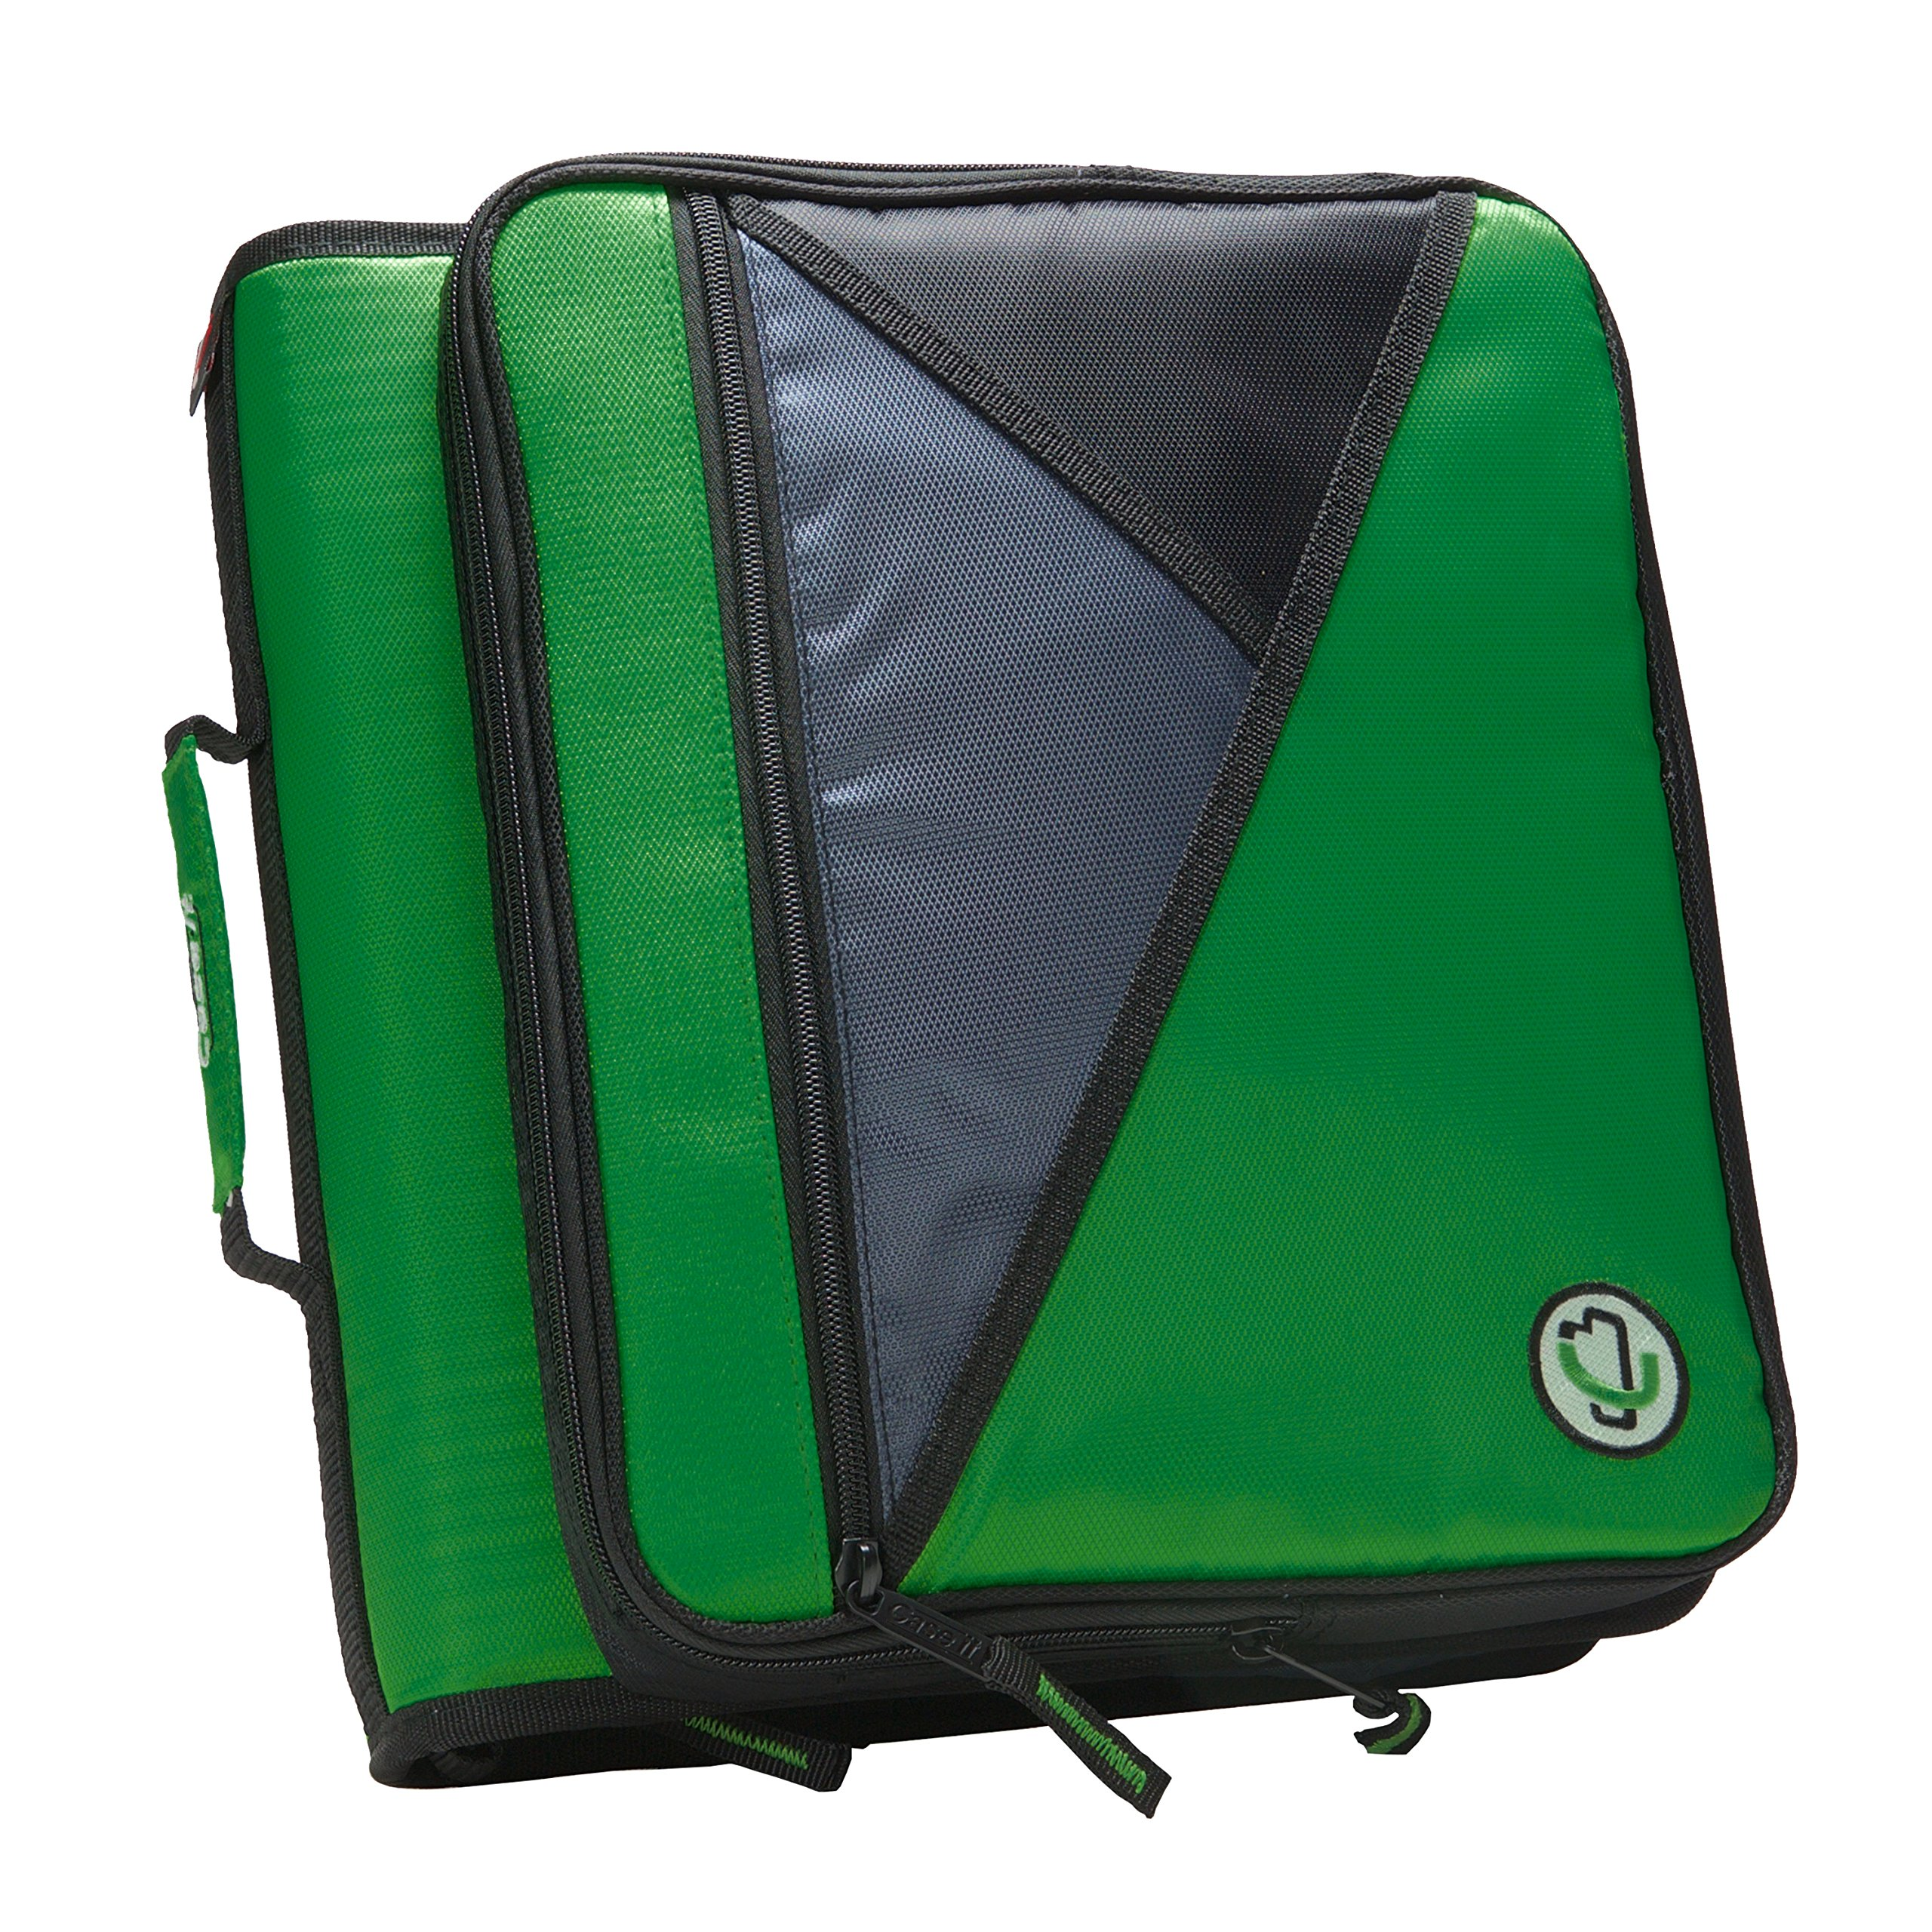 Case-it Universal 2-Inch 3-Ring Zipper Binder, Holds 13 Inch Laptop, Kelly Green, LT-007-KGRE